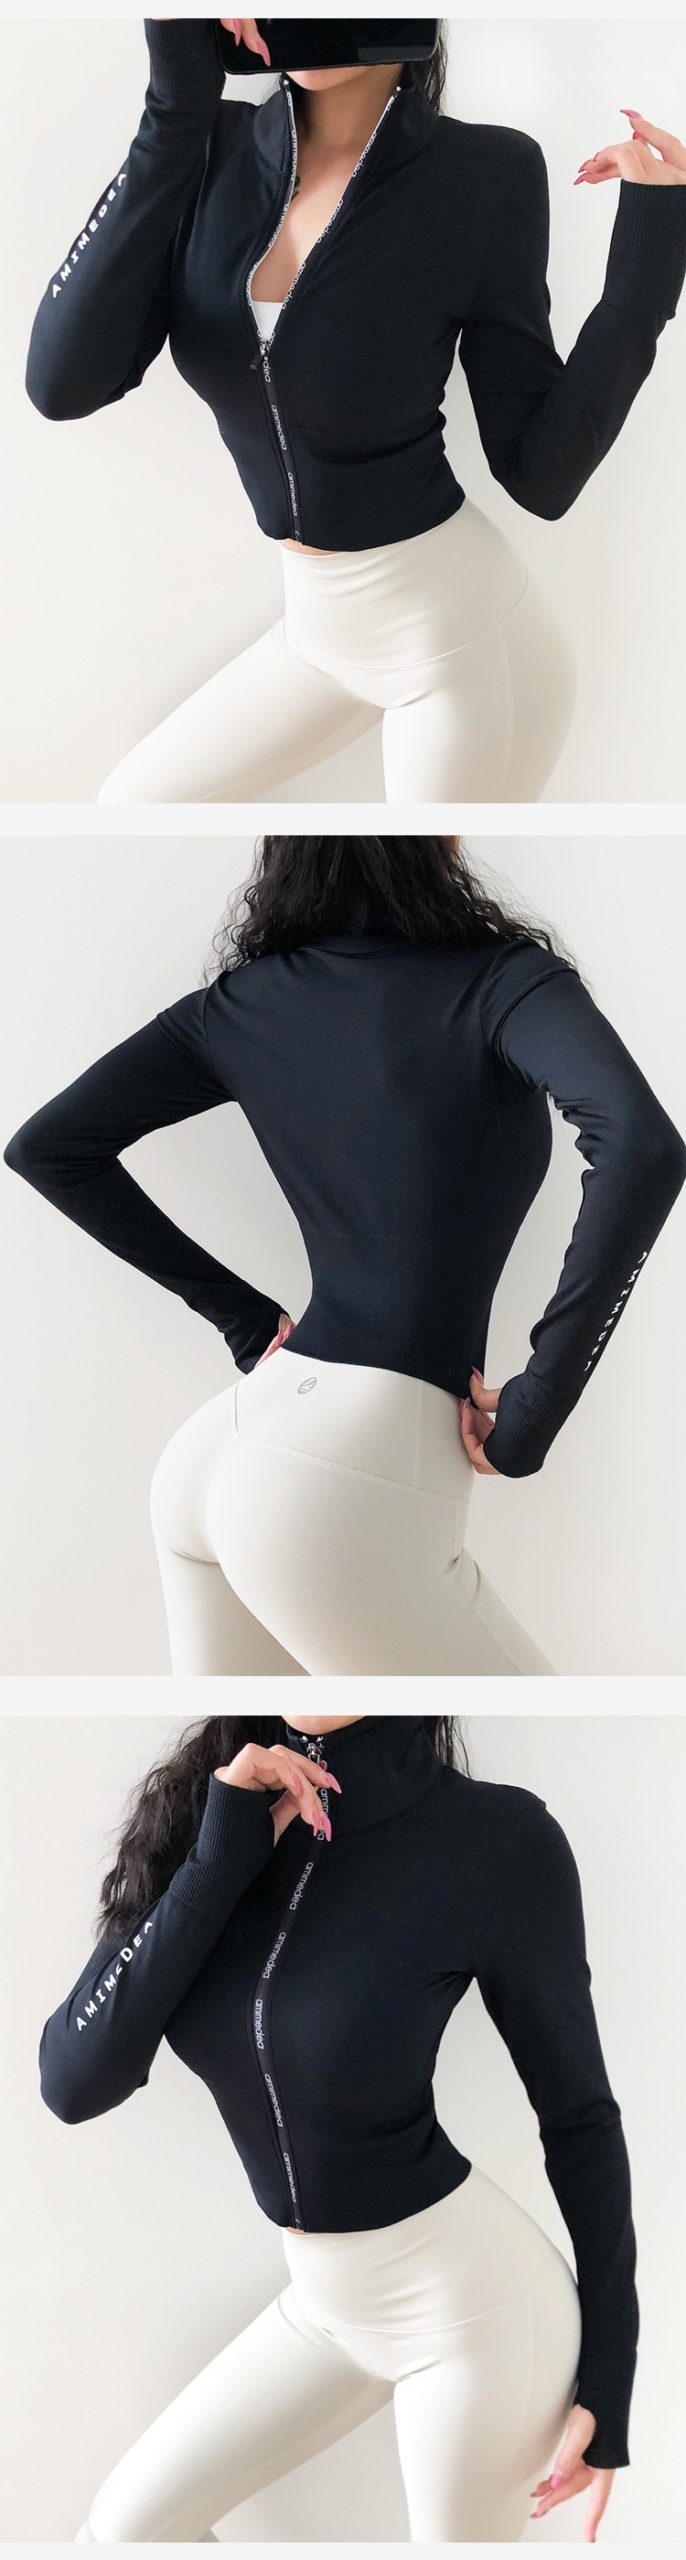 Women's  Long Sleeves Crop top  Sports Jersey Slim Fit shirt Fitness Yoga Top Winter Workout Jacket Female Gym Shirts